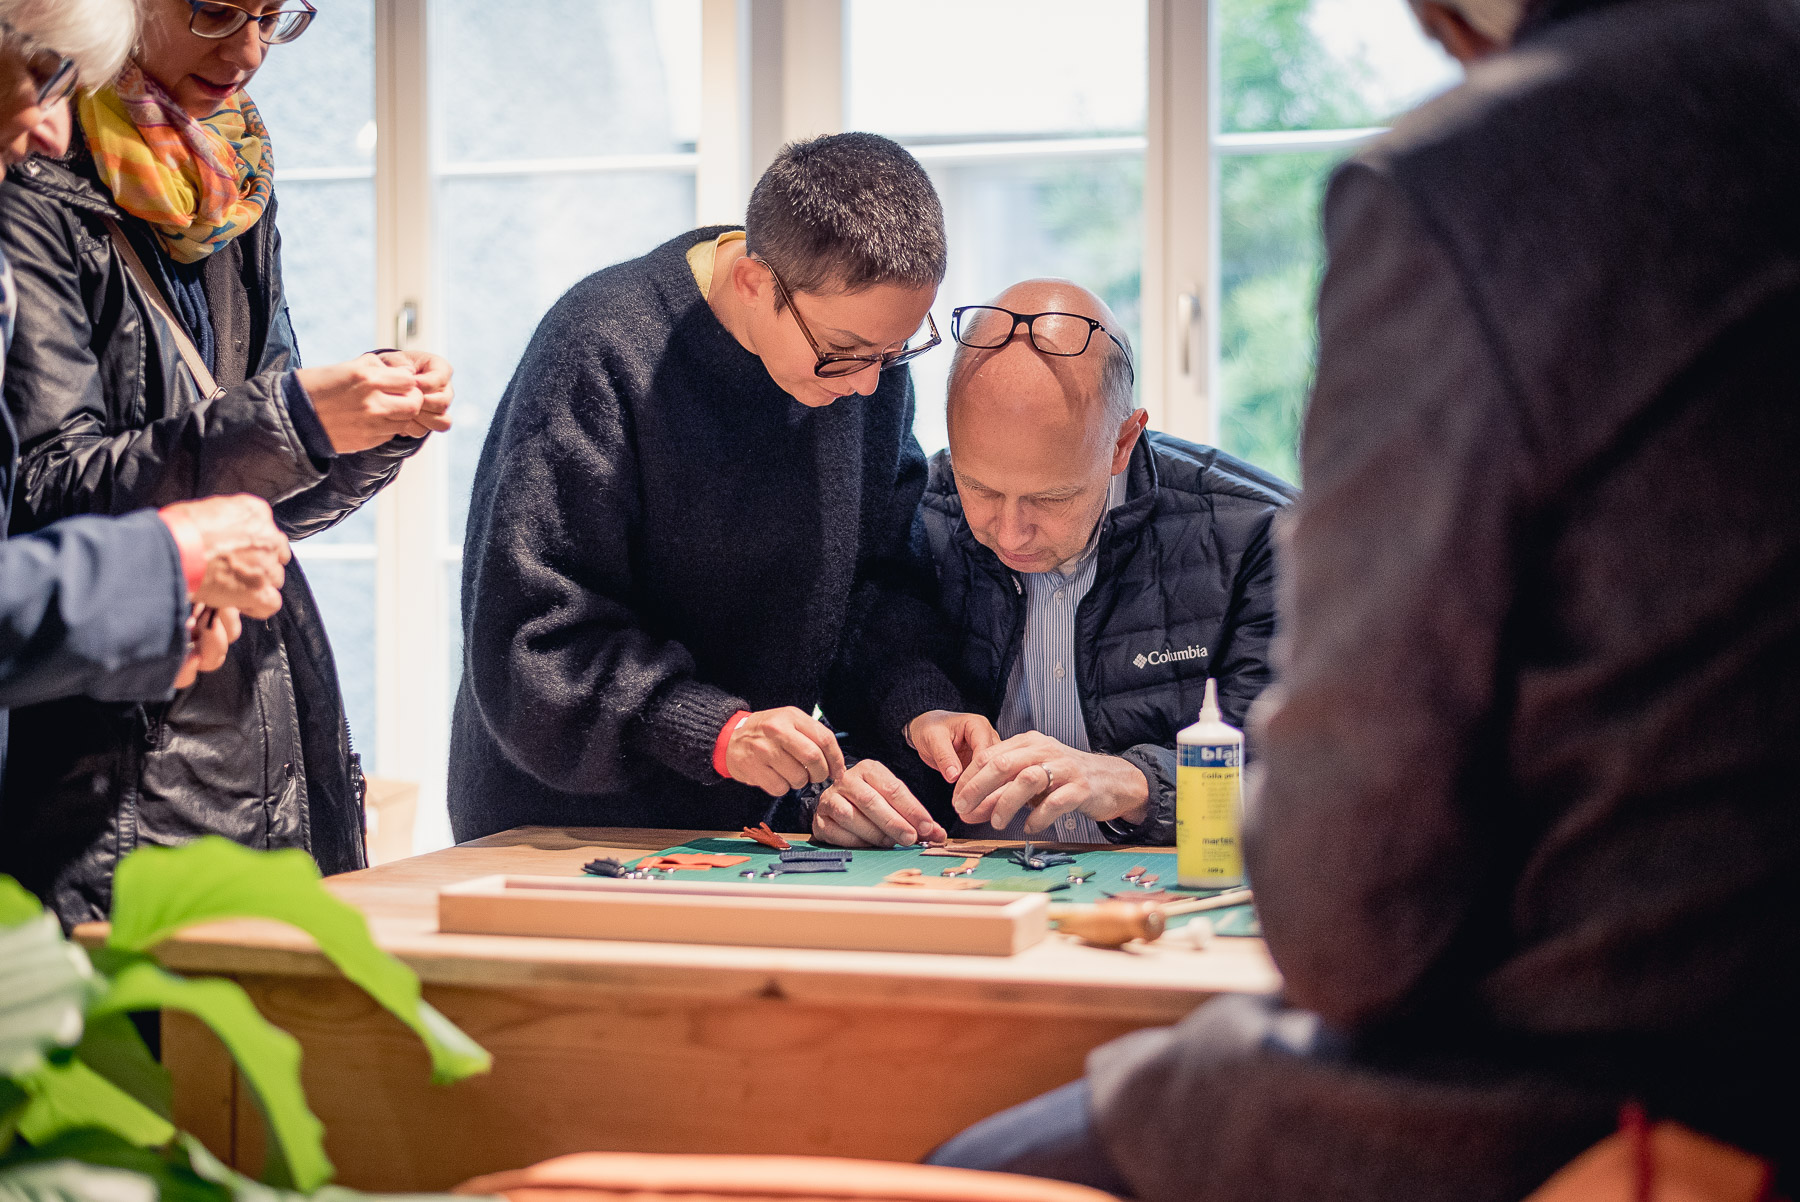 DESIGNRUNDGANG mit Kreativ-Workshop